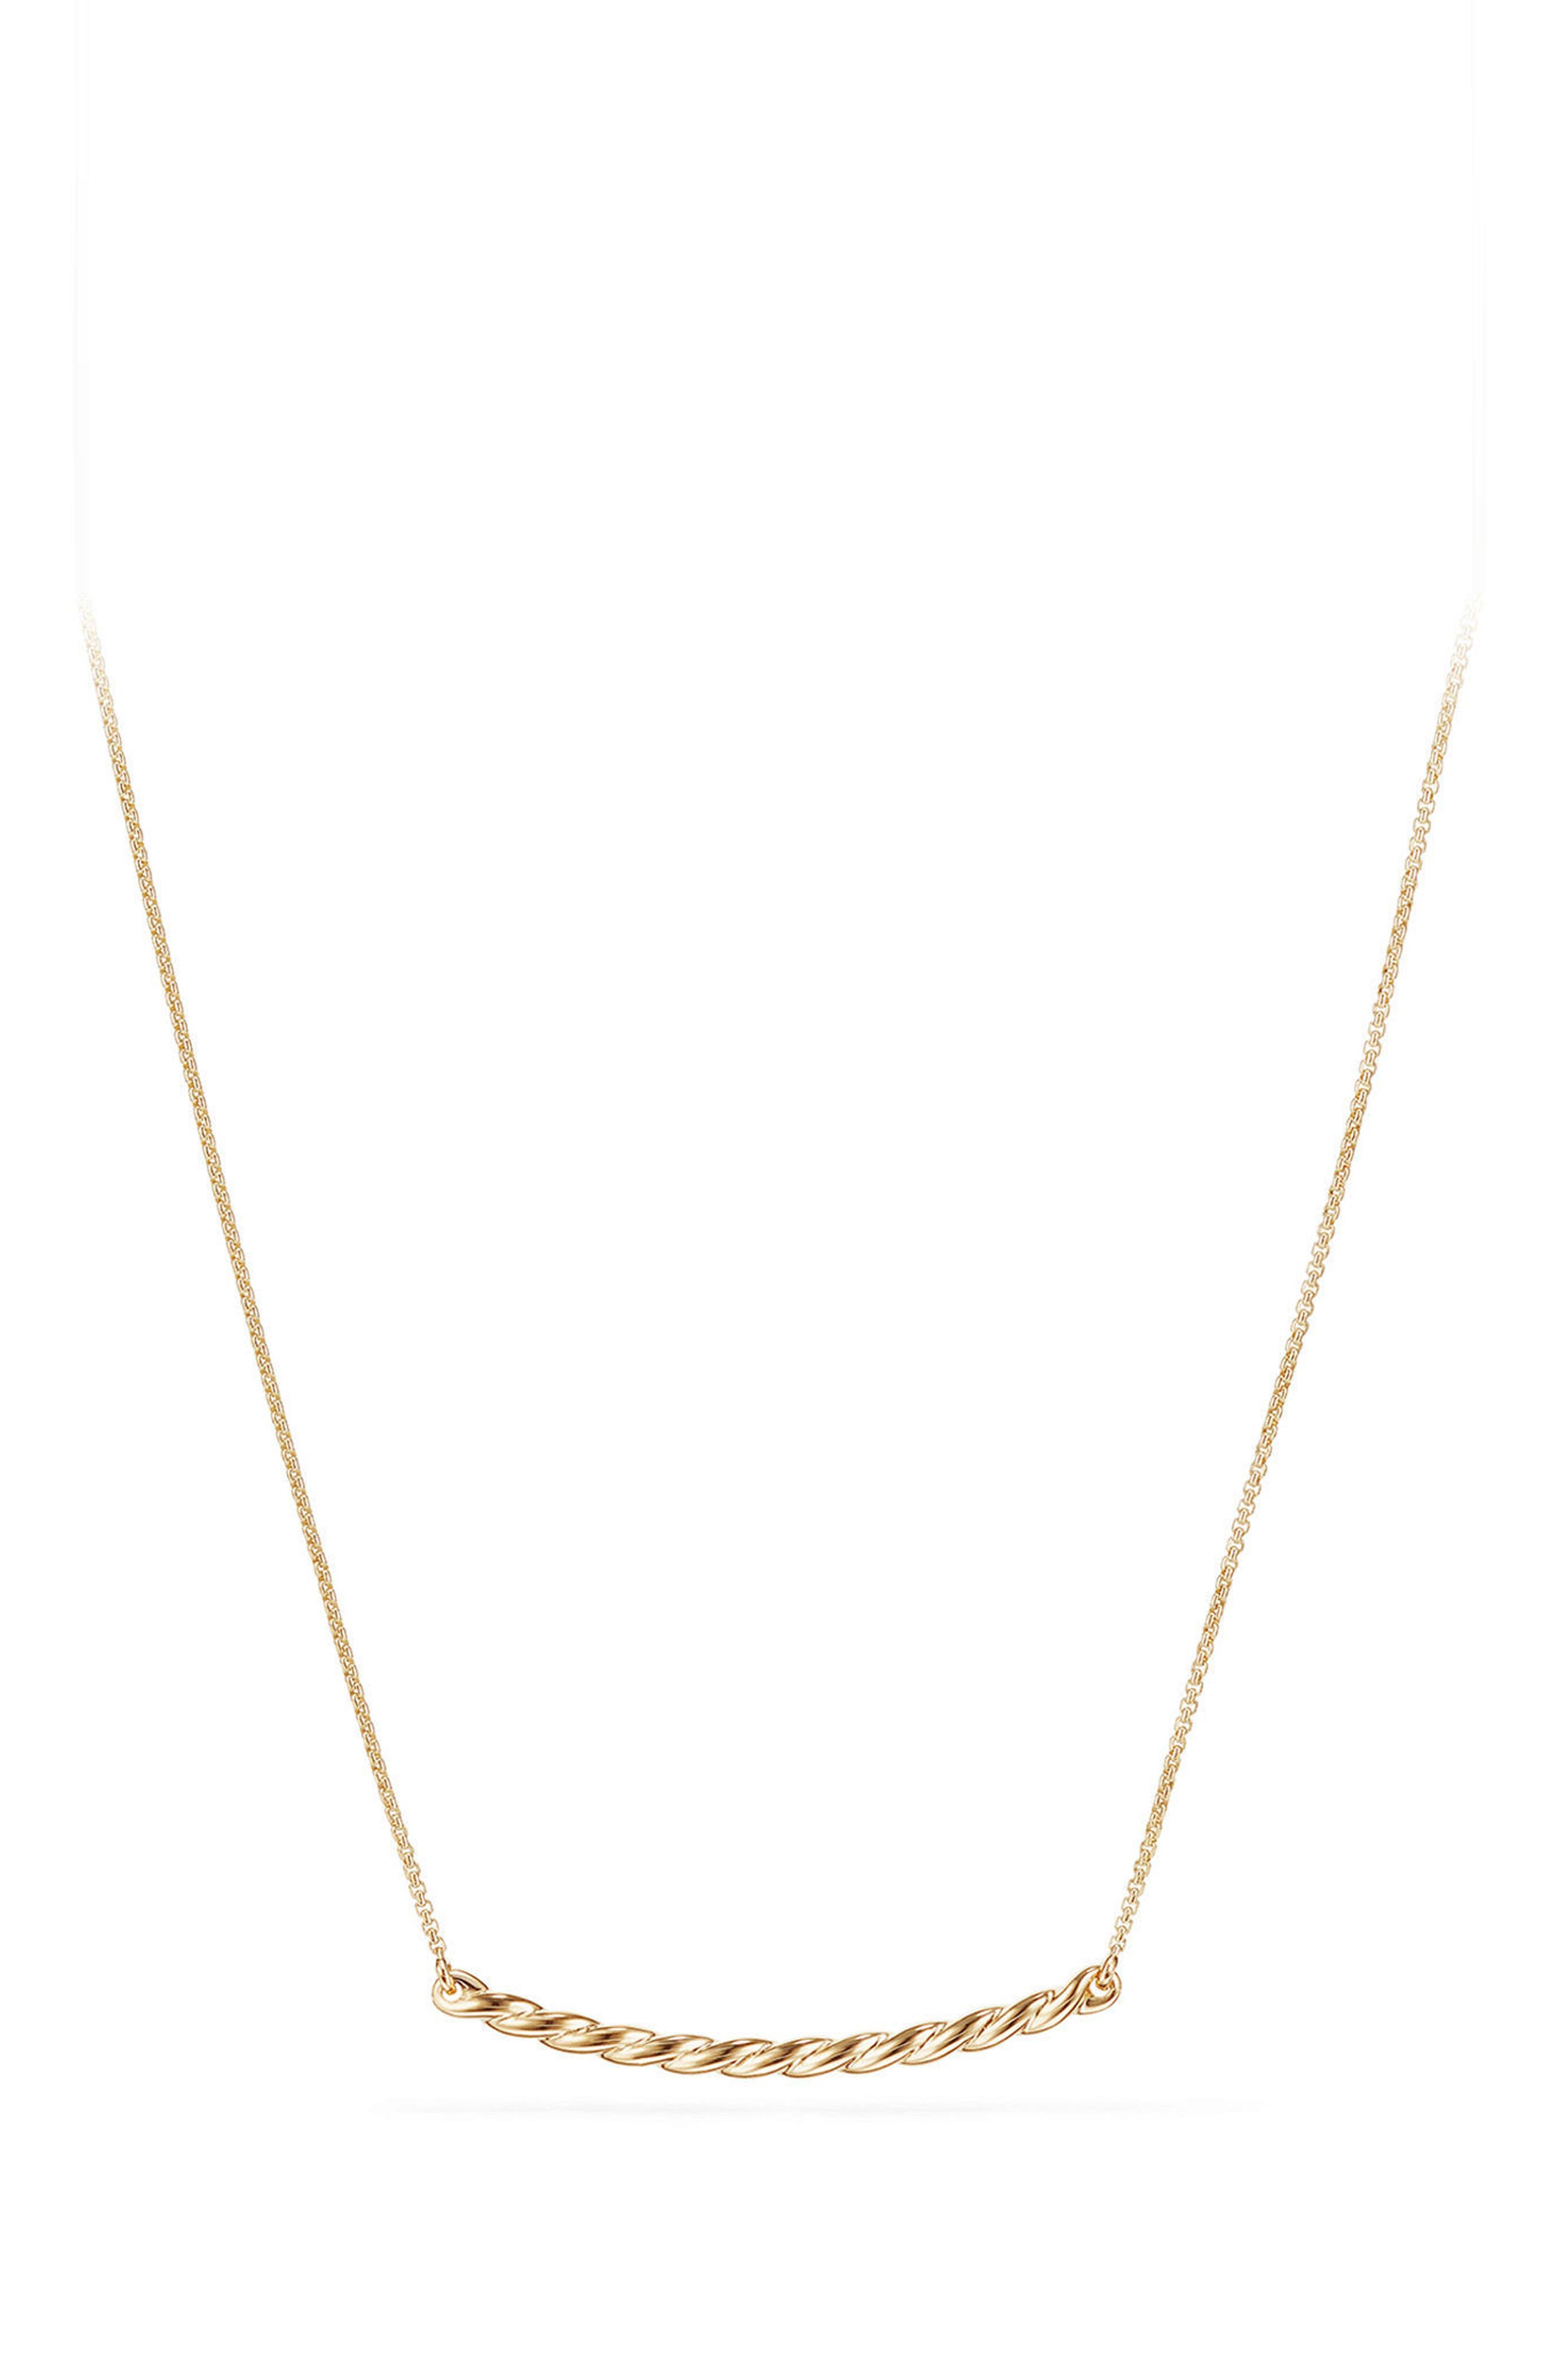 David Yurman Paveflex Station Necklace in 18K Gold